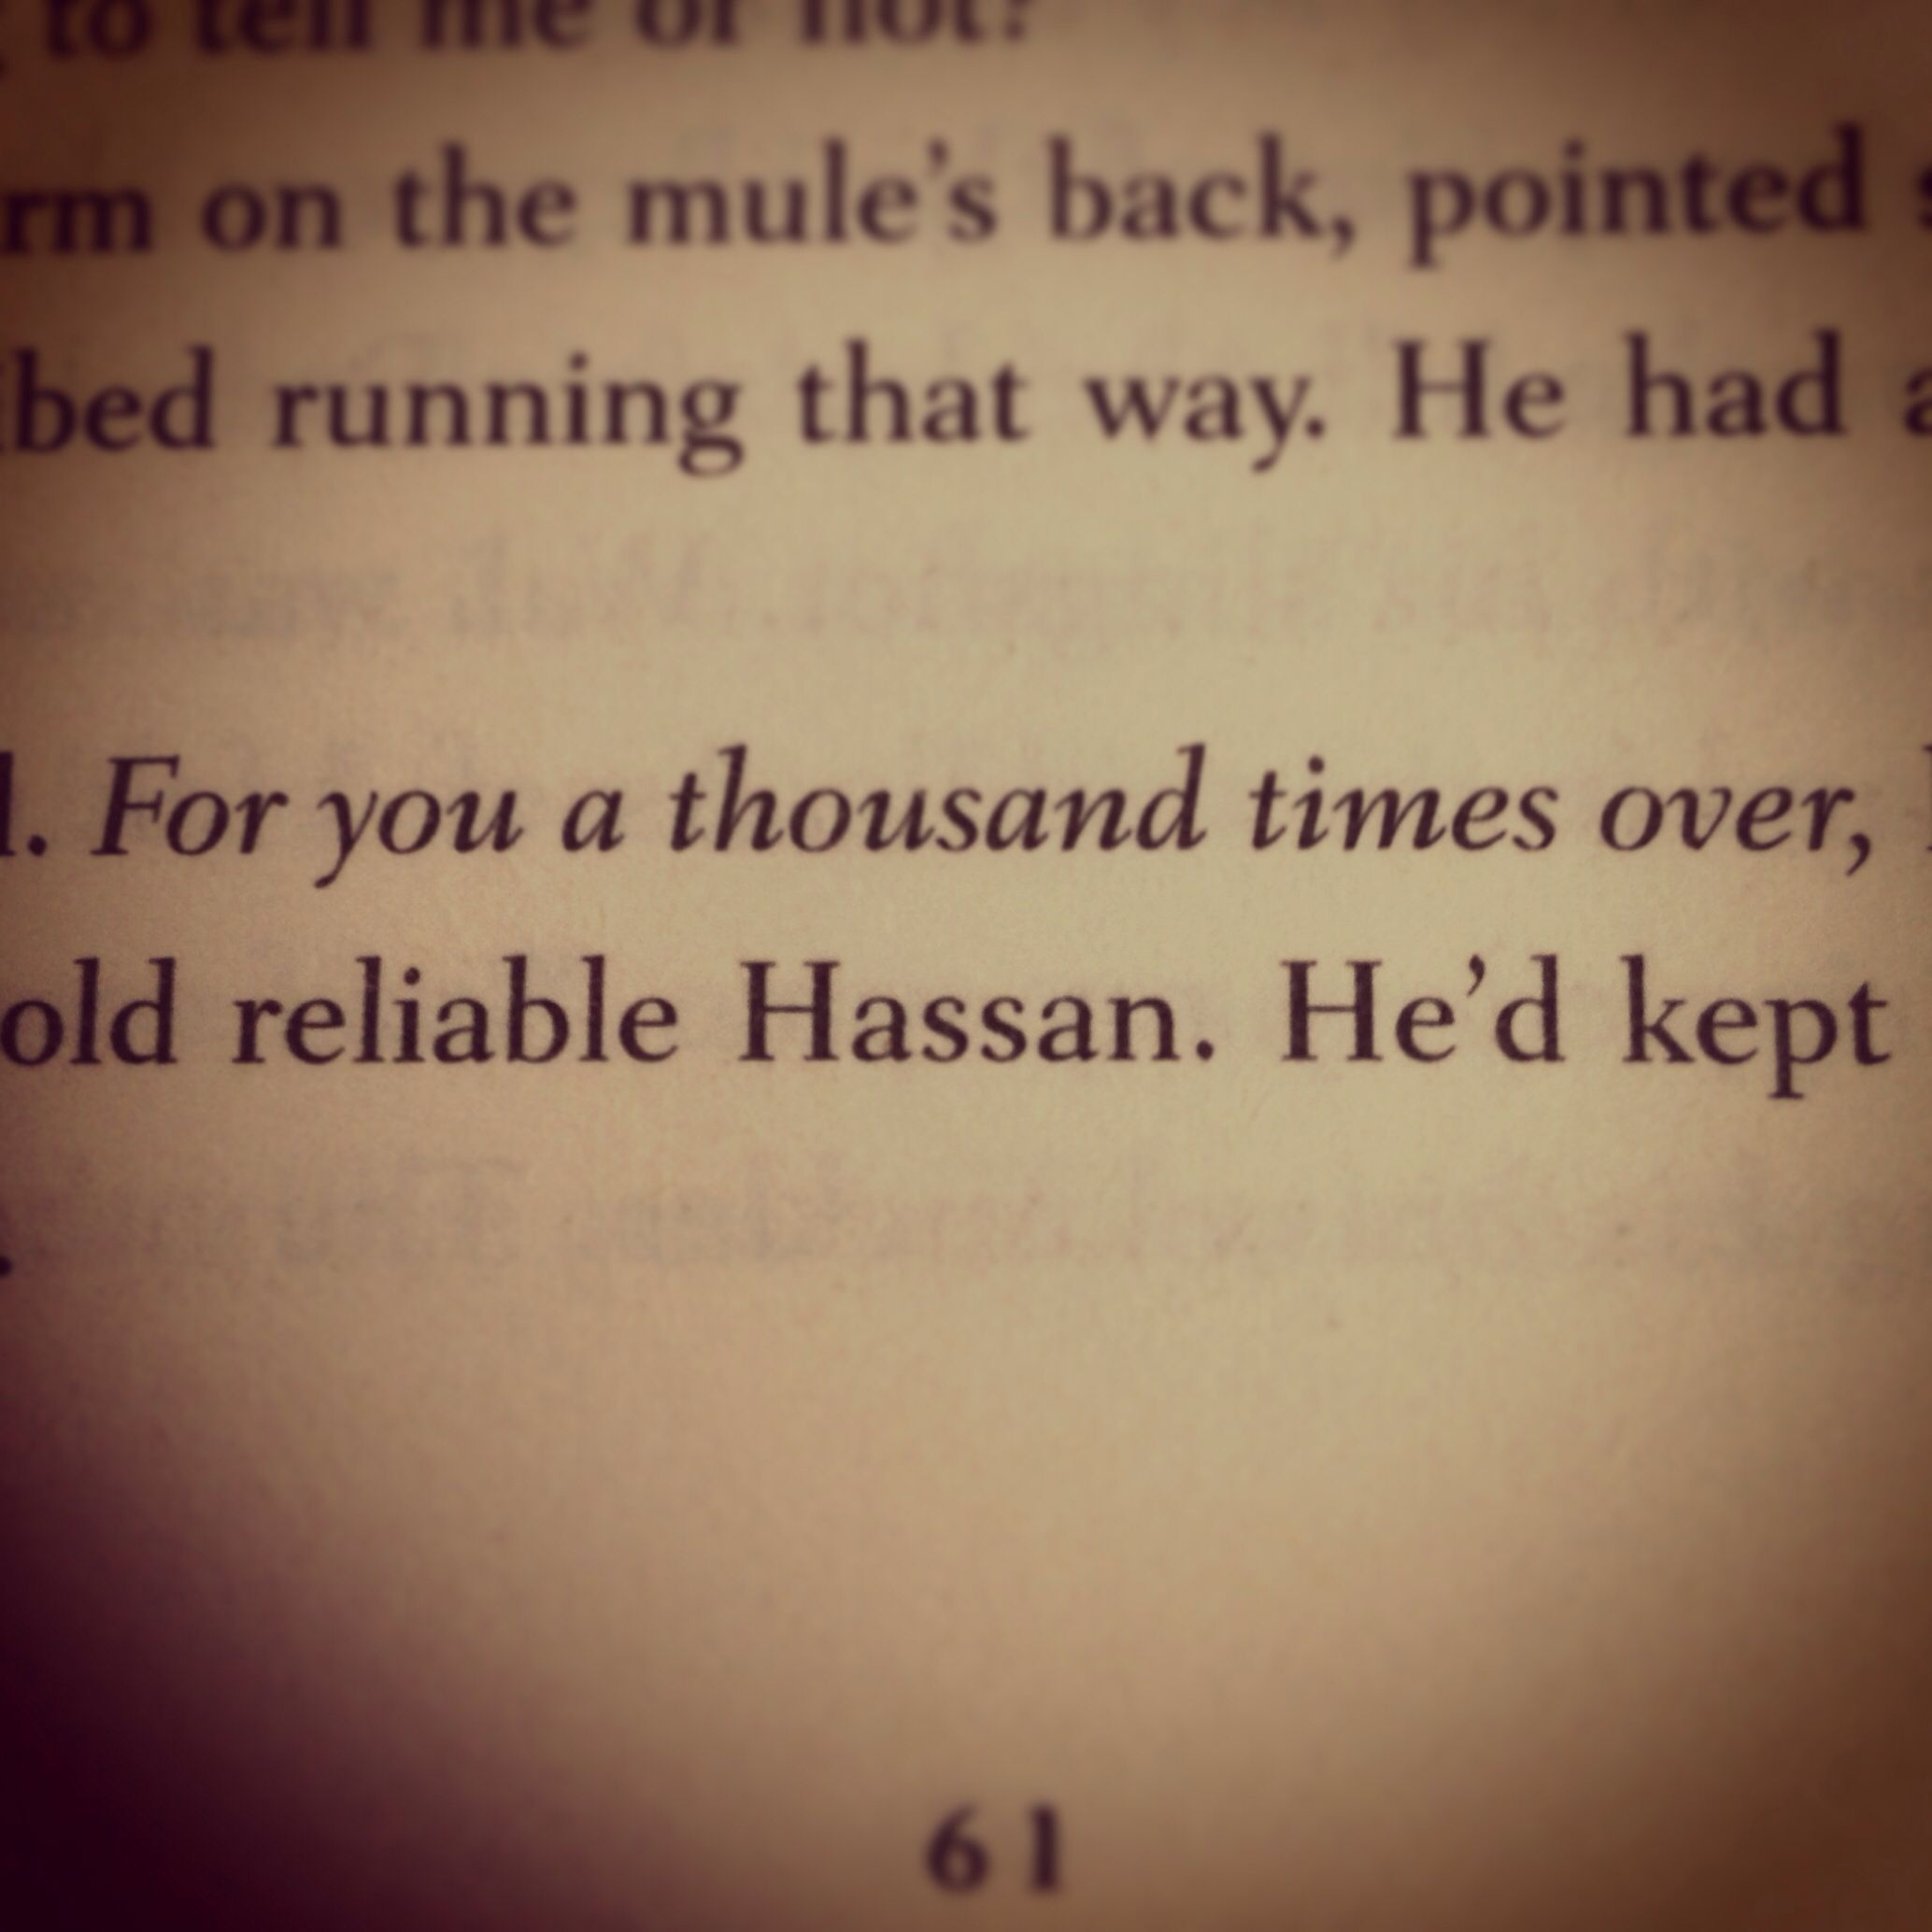 Business Cycle Essay The Kite Runner By Khaled Hosseini Hosseini Pinterest Khaled  Response Essay Thesis also Health Education Essay Kite Runner Quotes  Underfontanacountryinncom Health Essay Example